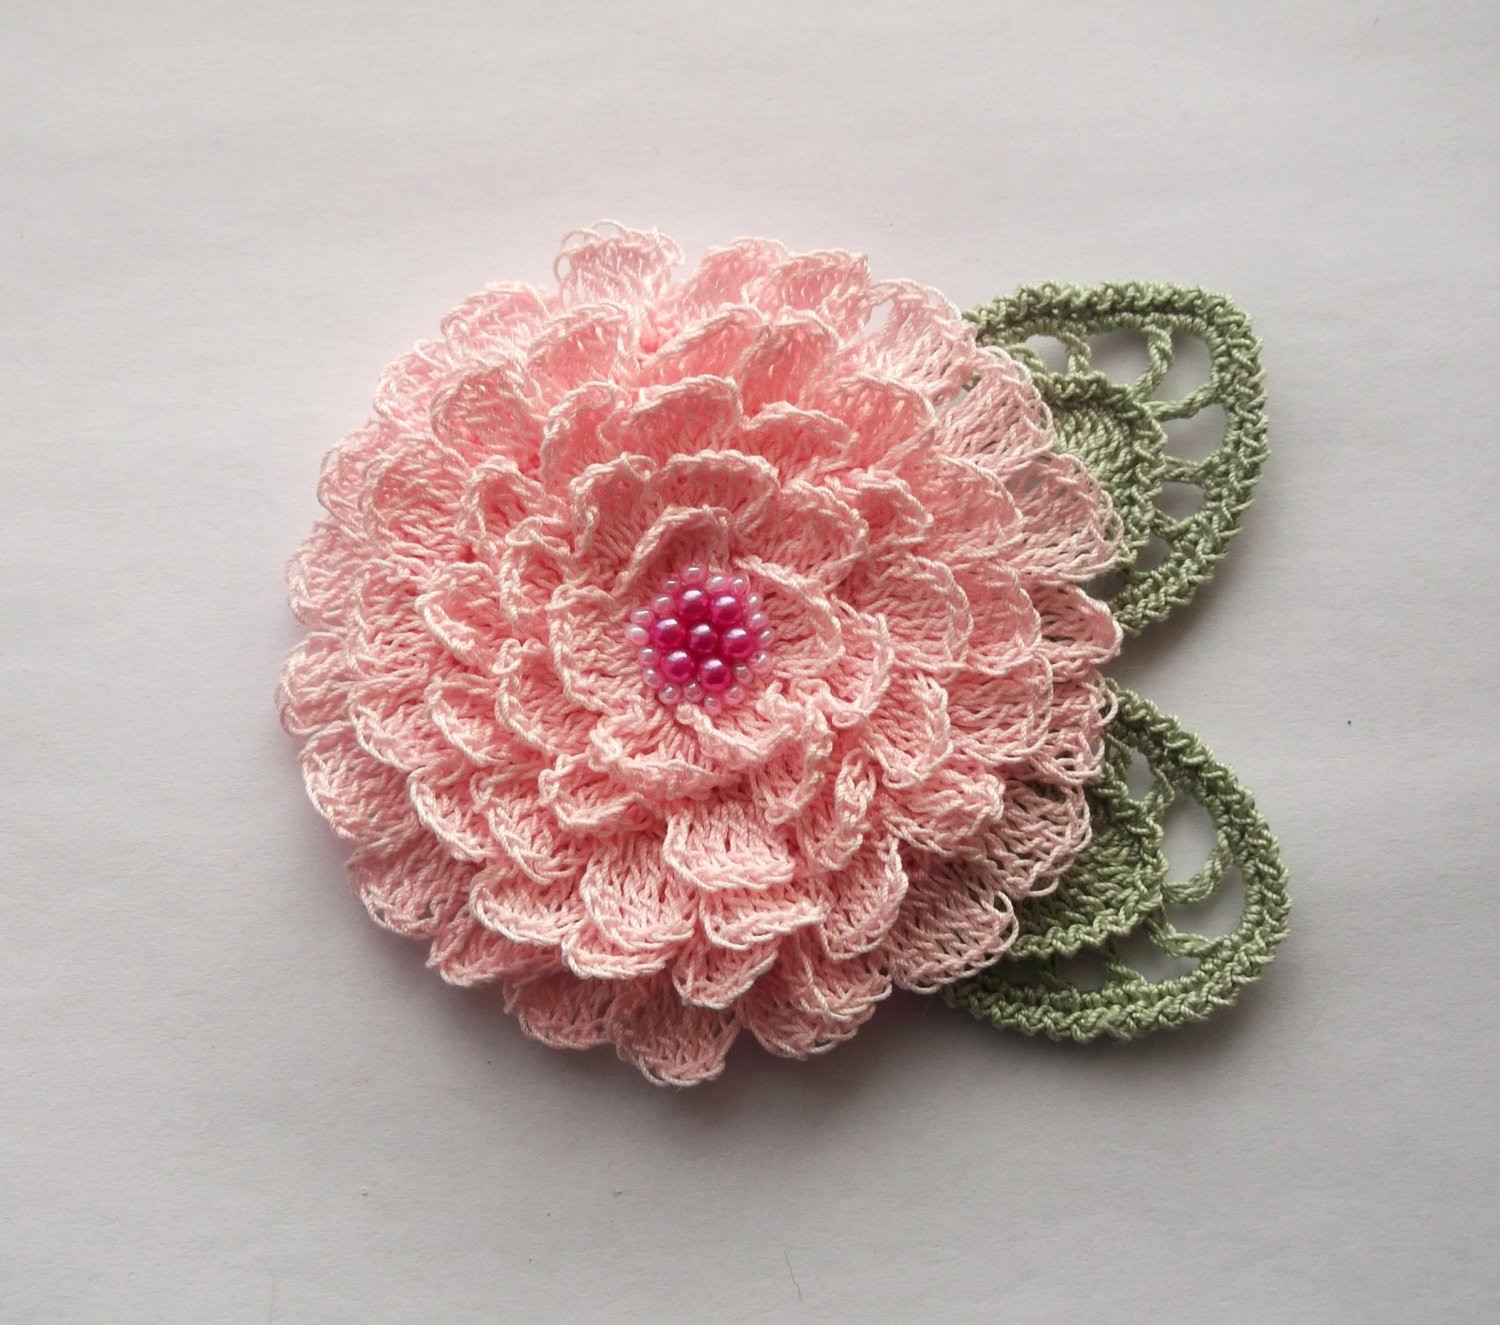 New Pink Crochet Flower Brooch Pink Crochet Brooch Flower Handmade Crochet Of Delightful 40 Pics Handmade Crochet